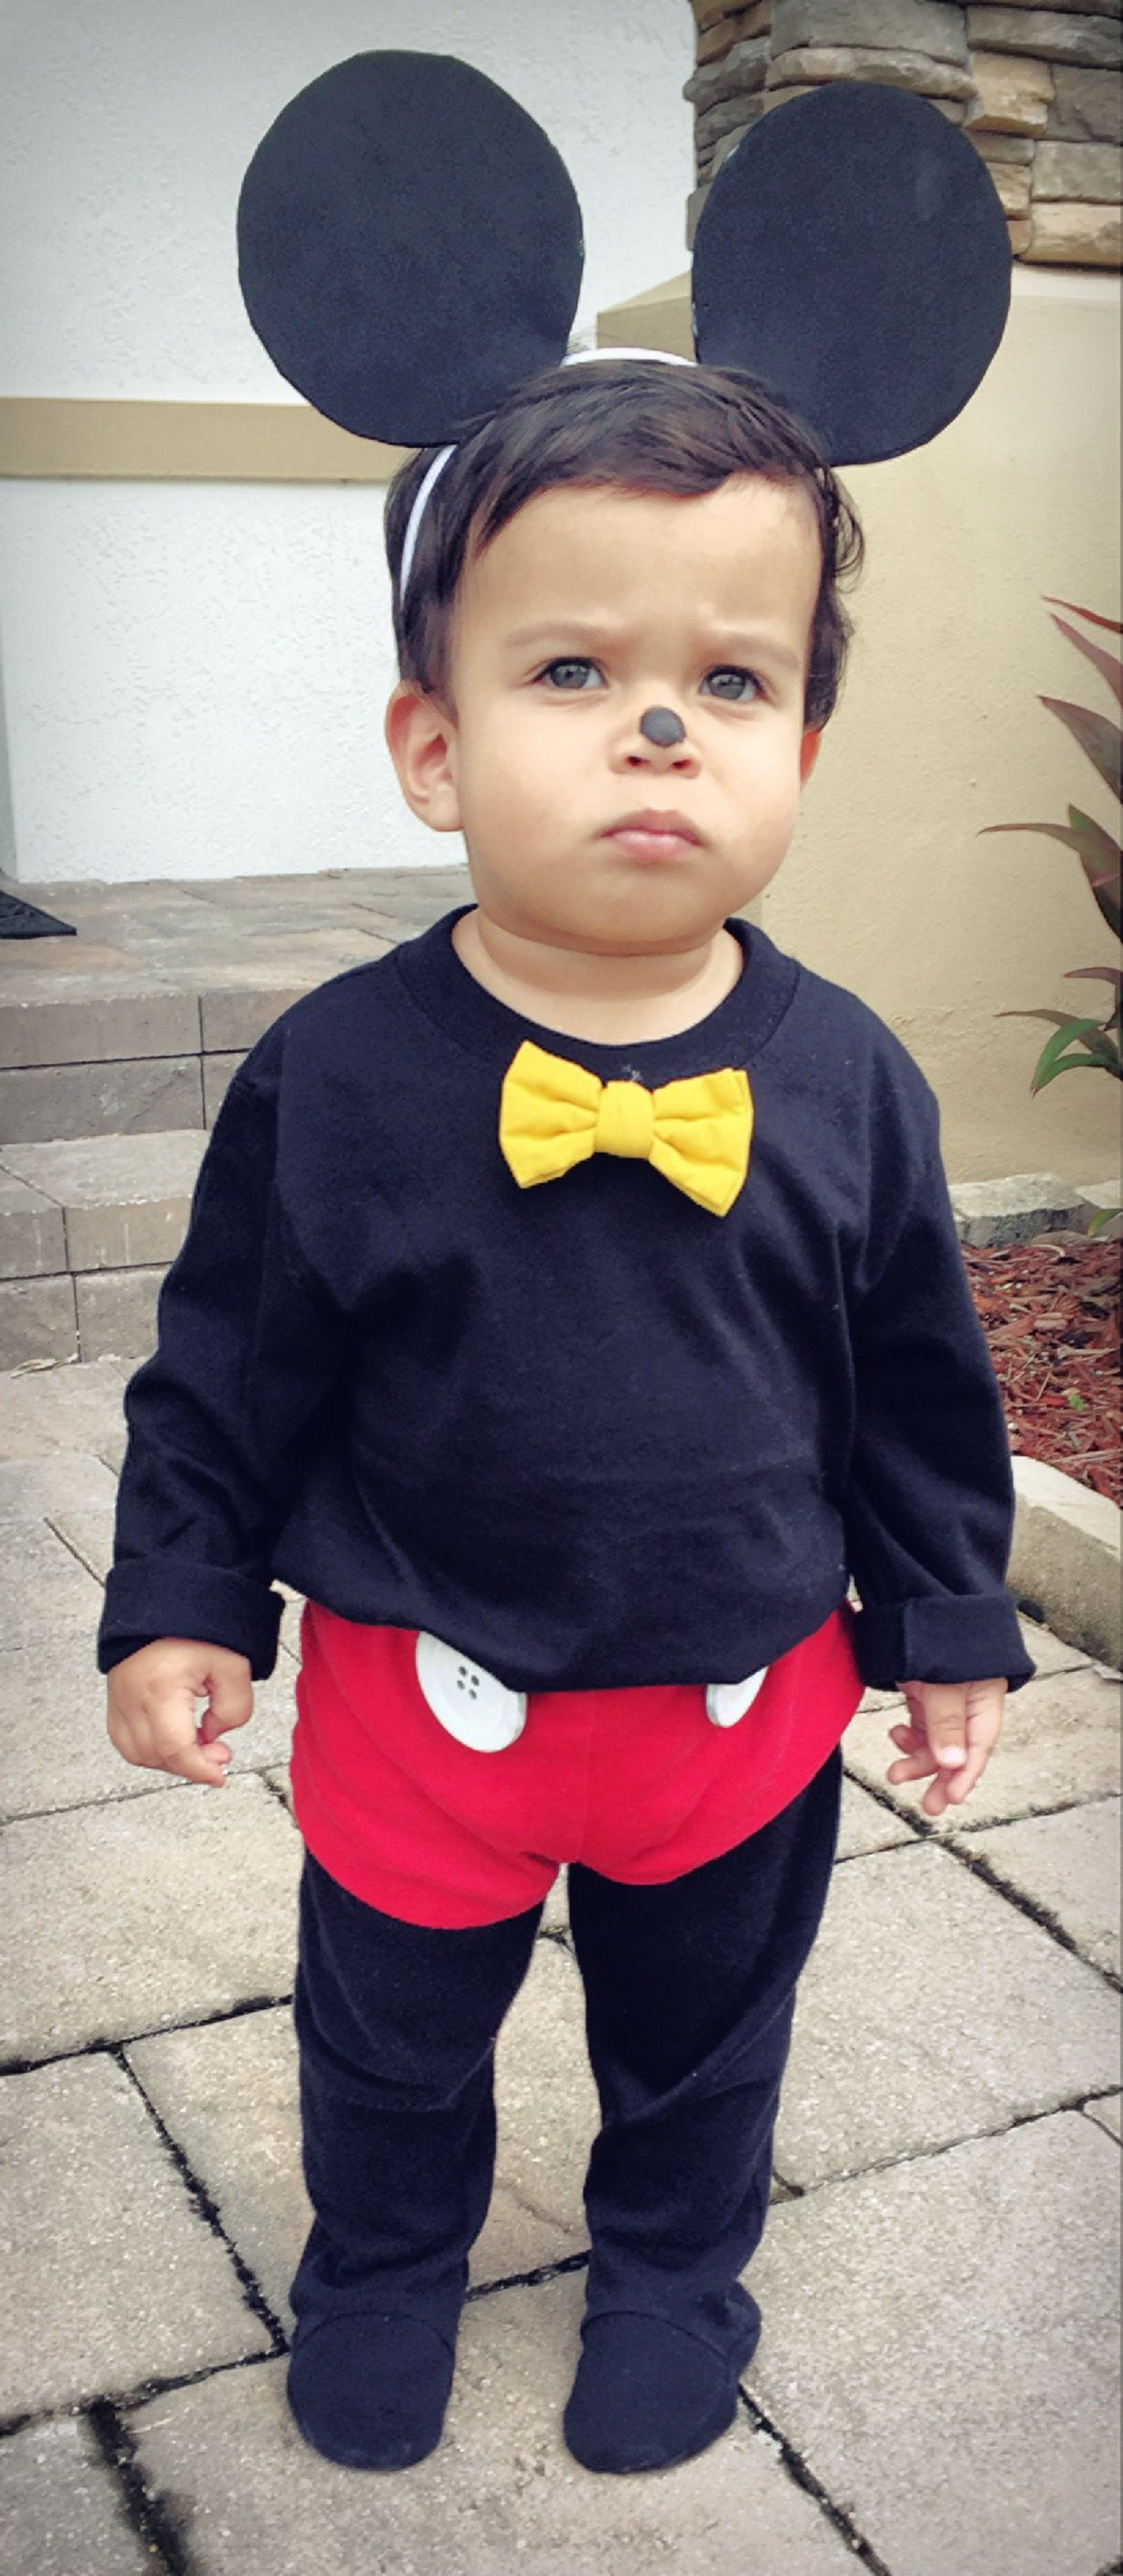 DIY Mickey Mouse Toddler Costume  sc 1 st  Pinterest & DIY Mickey Mouse Toddler Costume | Ho Ho holidays :)! | Pinterest ...